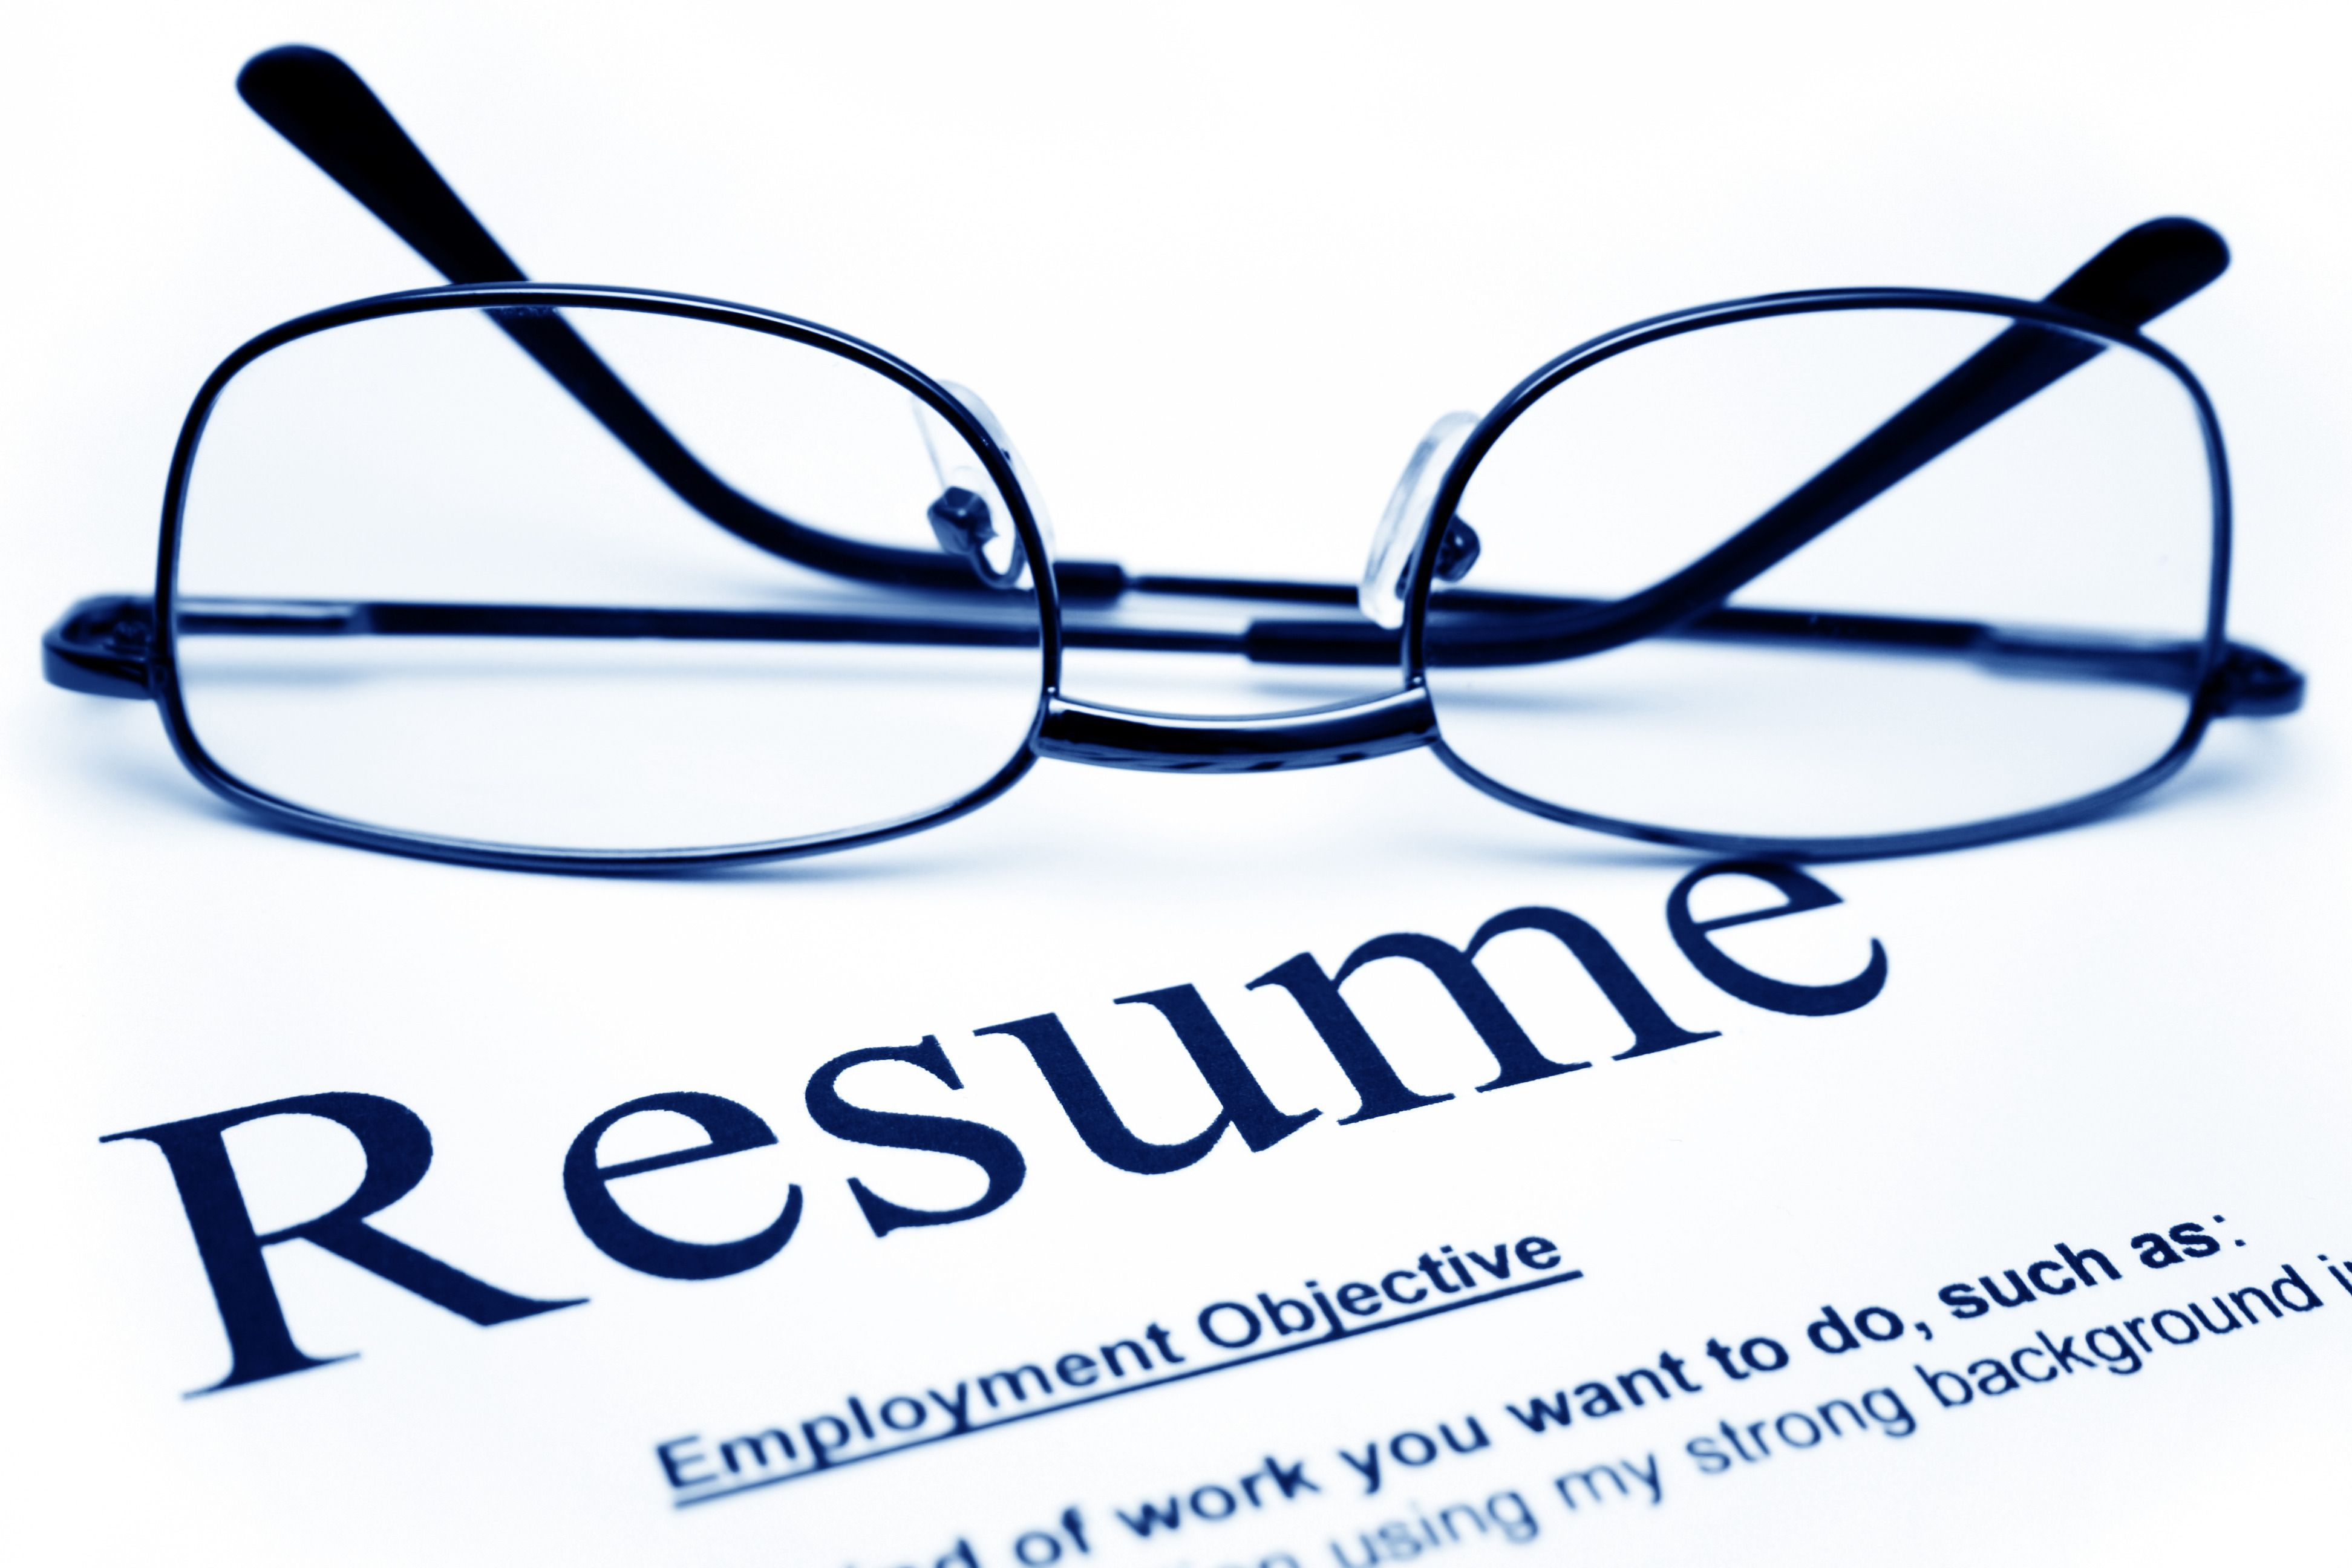 resume you thought it would demonstrate your integrity and positive traits or it was simply another example of your leadership skills and experience - Resume Discrimination